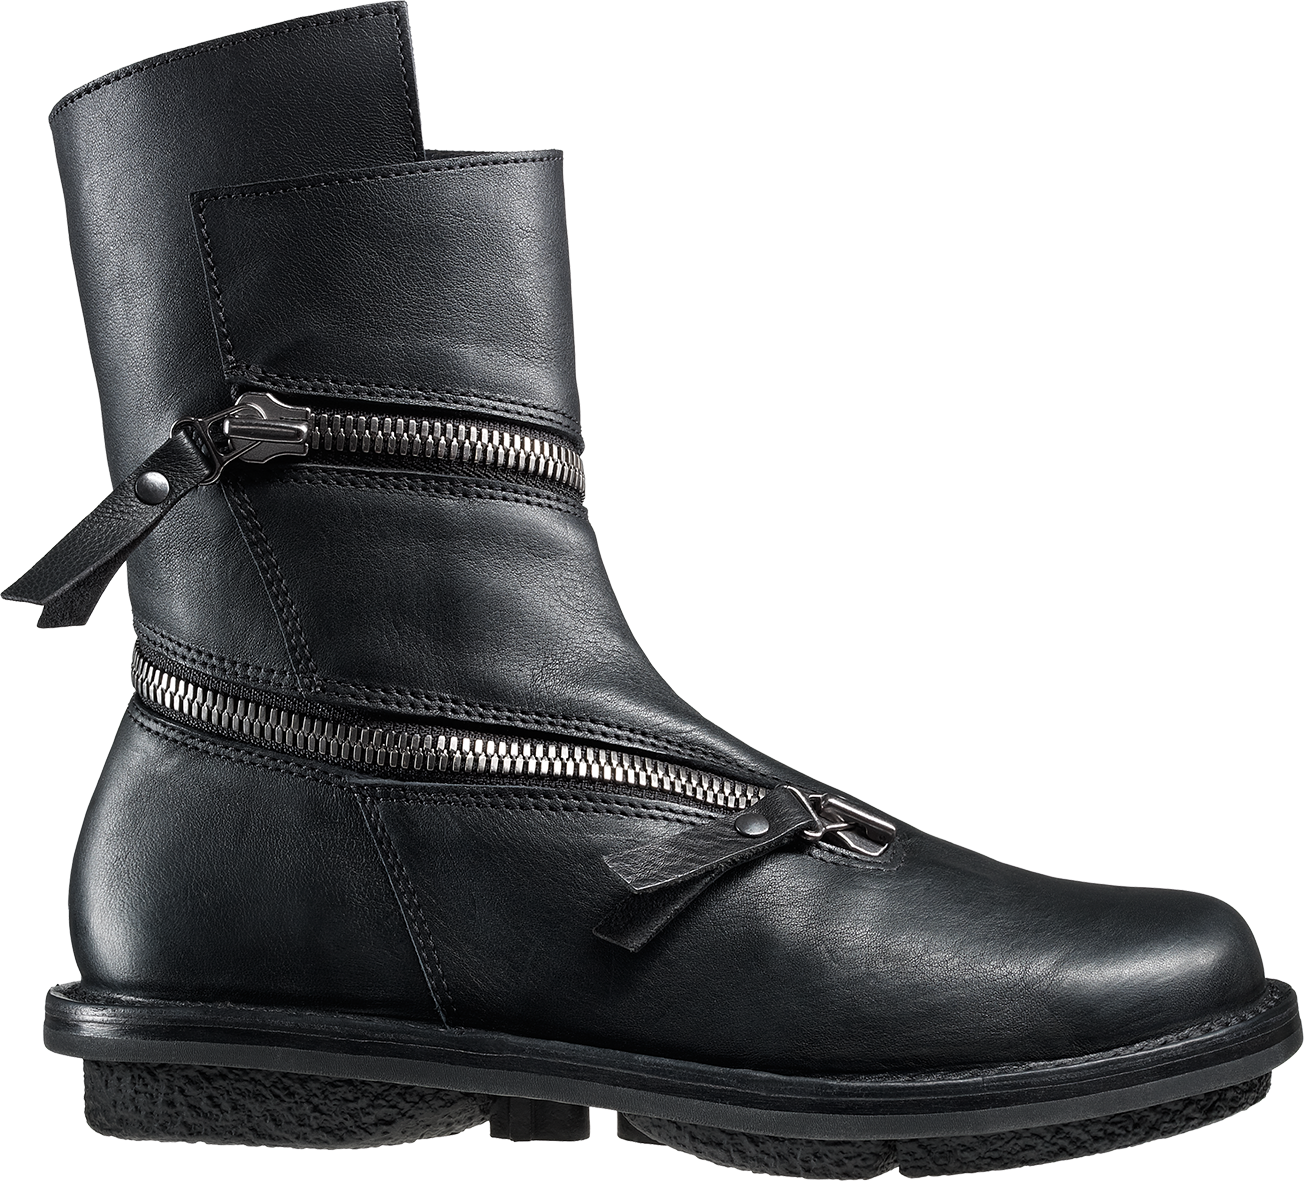 F Helix Closed ShoesBoots Und StiefelSchuhe Fashion Shoes lF1TKJc